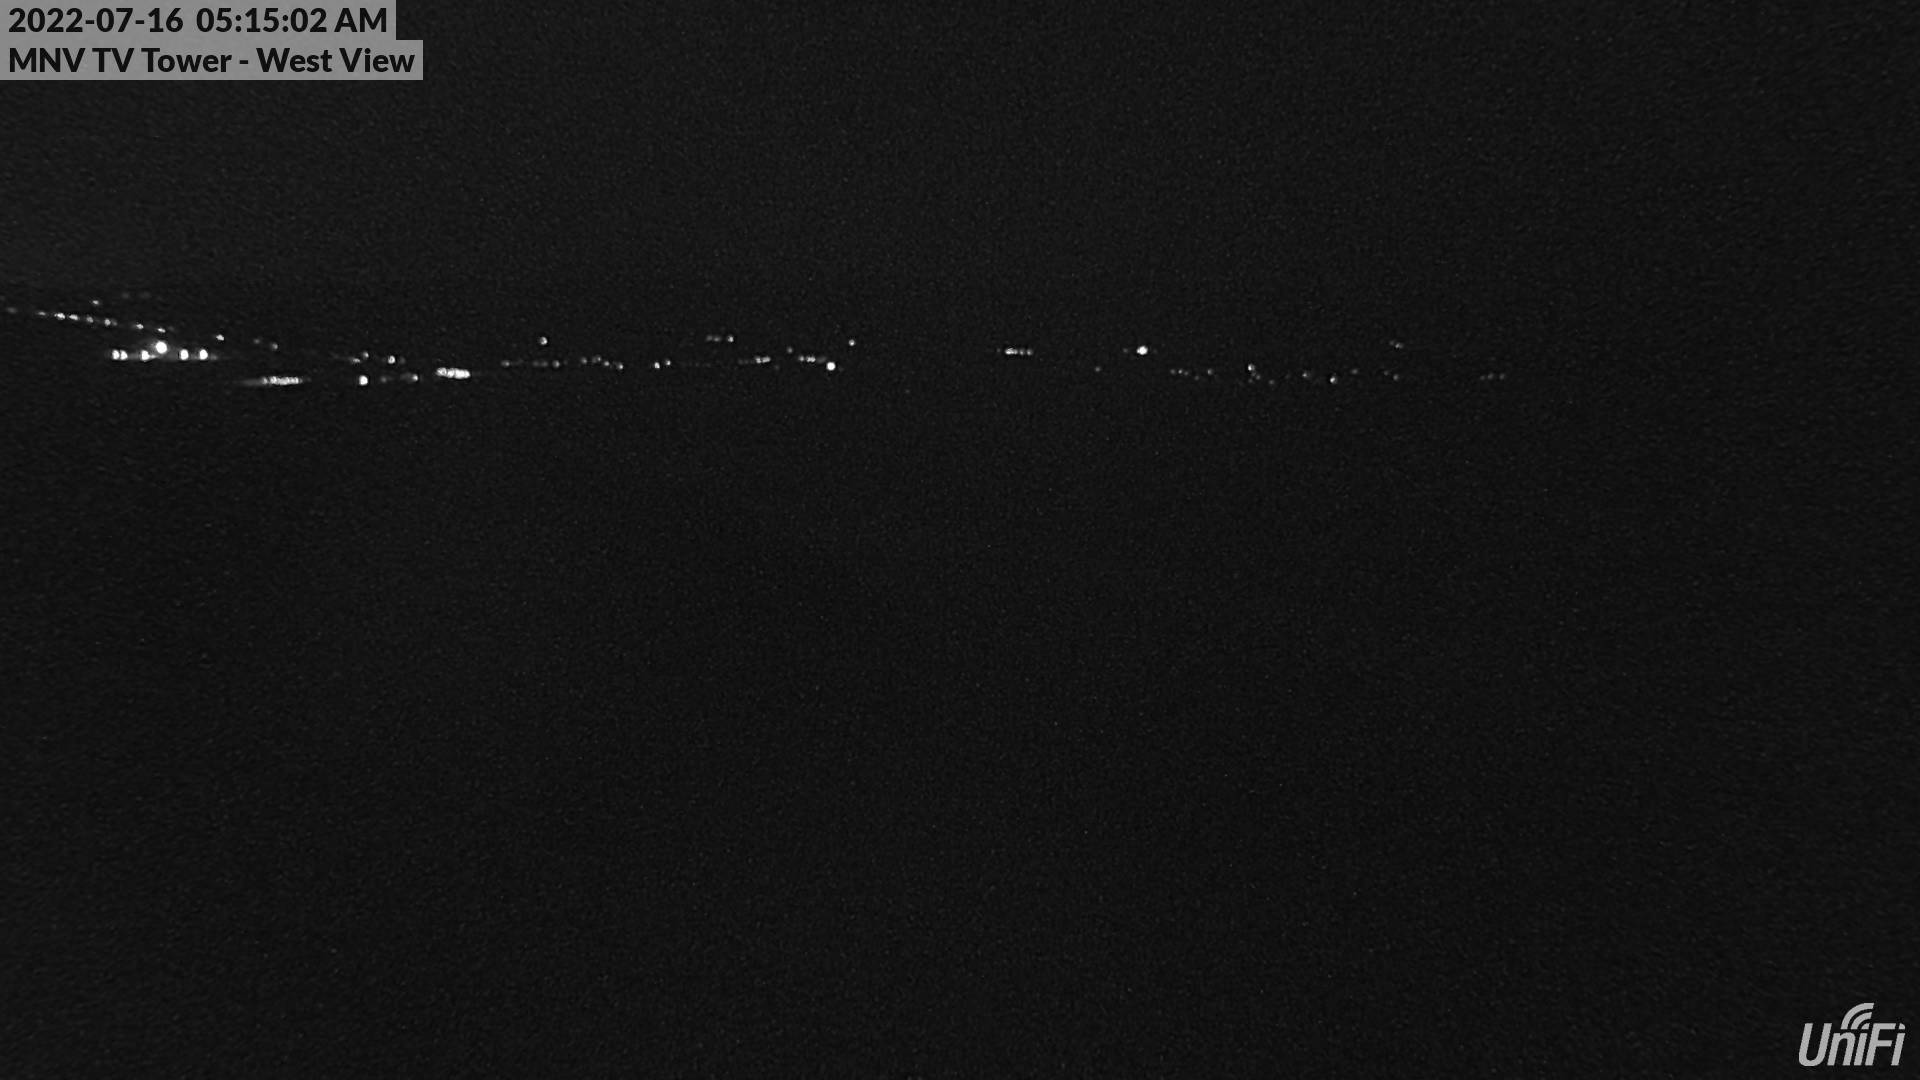 Moapa Valley Webcam - Glendale from The Moapa Valley TV Maintenance District Tower